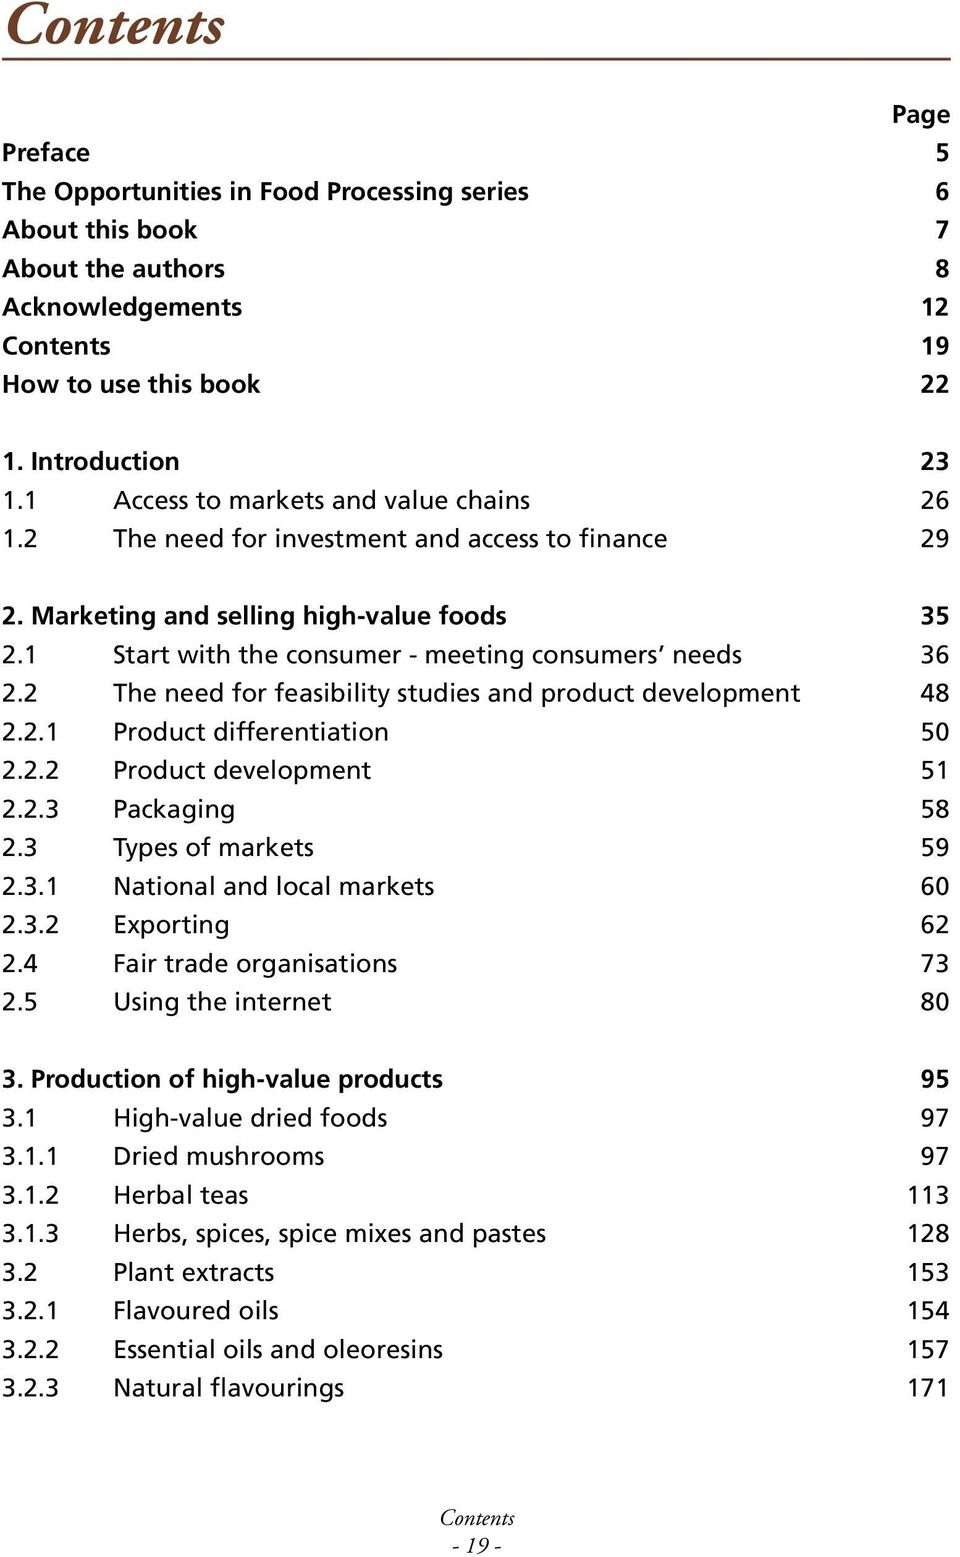 2 The need for feasibility studies and product development 48 2.2.1 Product differentiation 50 2.2.2 Product development 51 2.2.3 Packaging 58 2.3 Types of markets 59 2.3.1 National and local markets 60 2.